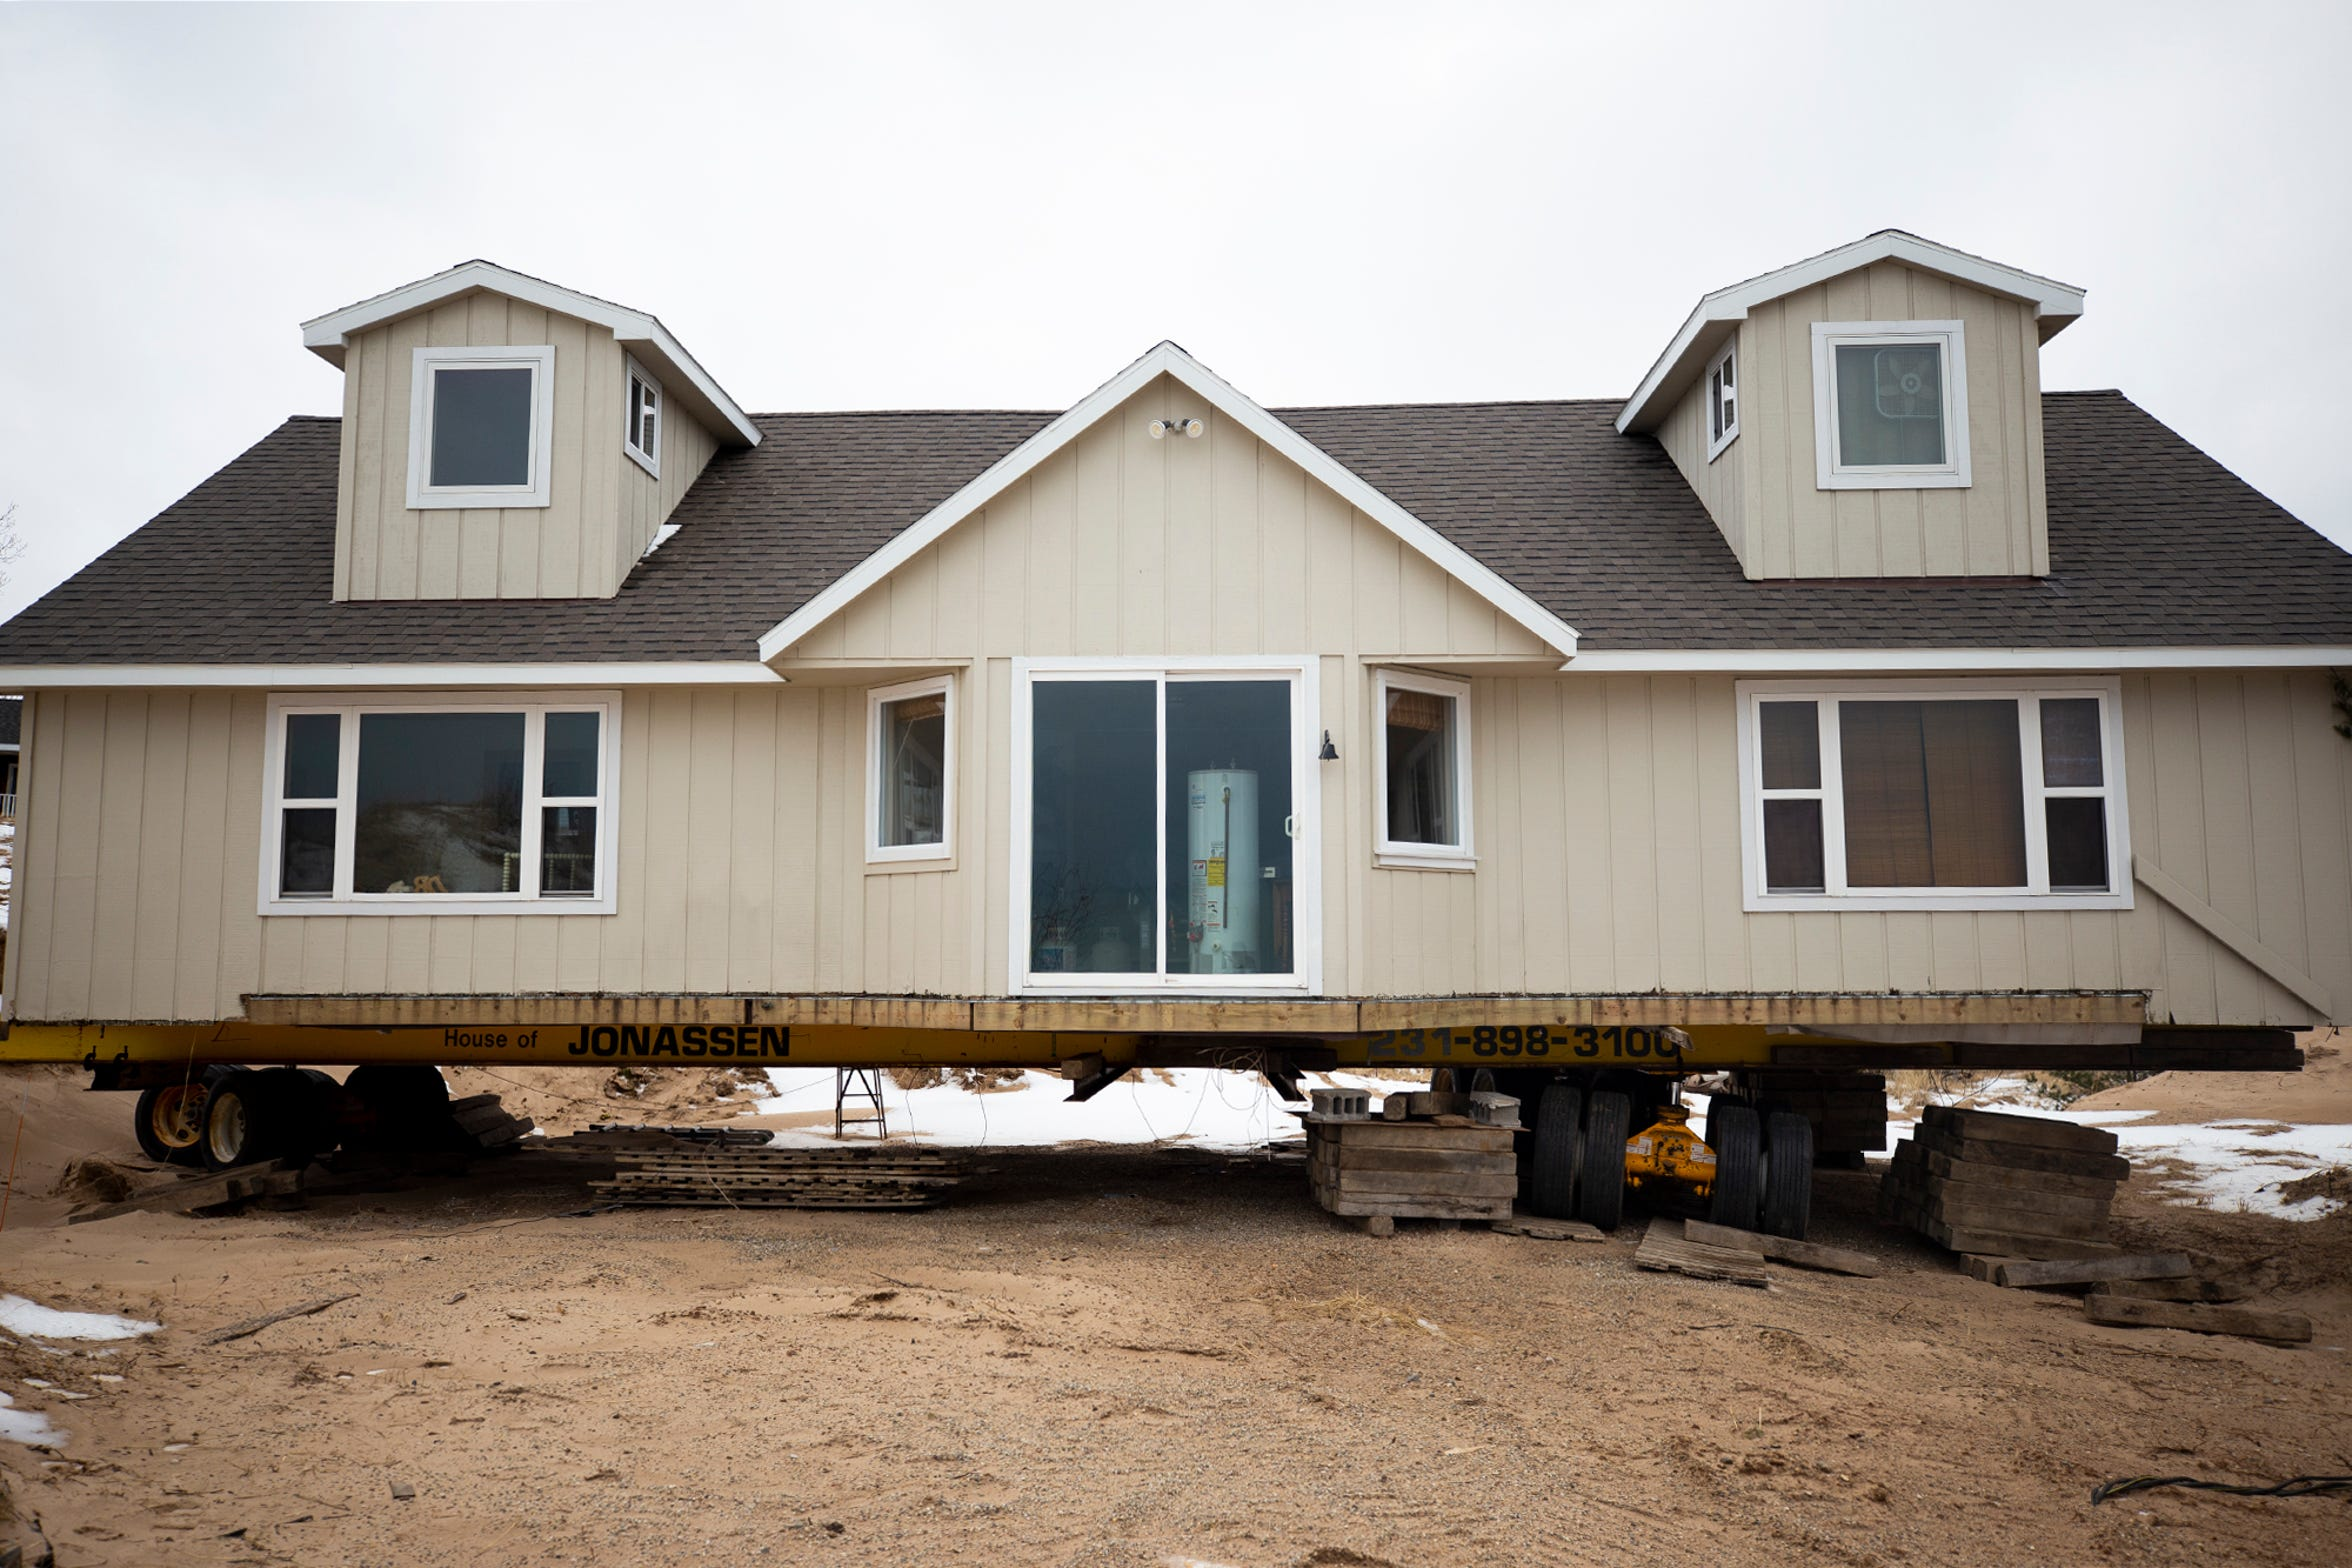 A house remains lifted after being moved back from the edge of the bluffs overlooking Lake Michigan on what once was North Lakeshore Drive at Juniper Beach in Golden Township. Part of North Lakeshore Drive has fallen into Lake Michigan due to high lake levels causing shoreline erosion.